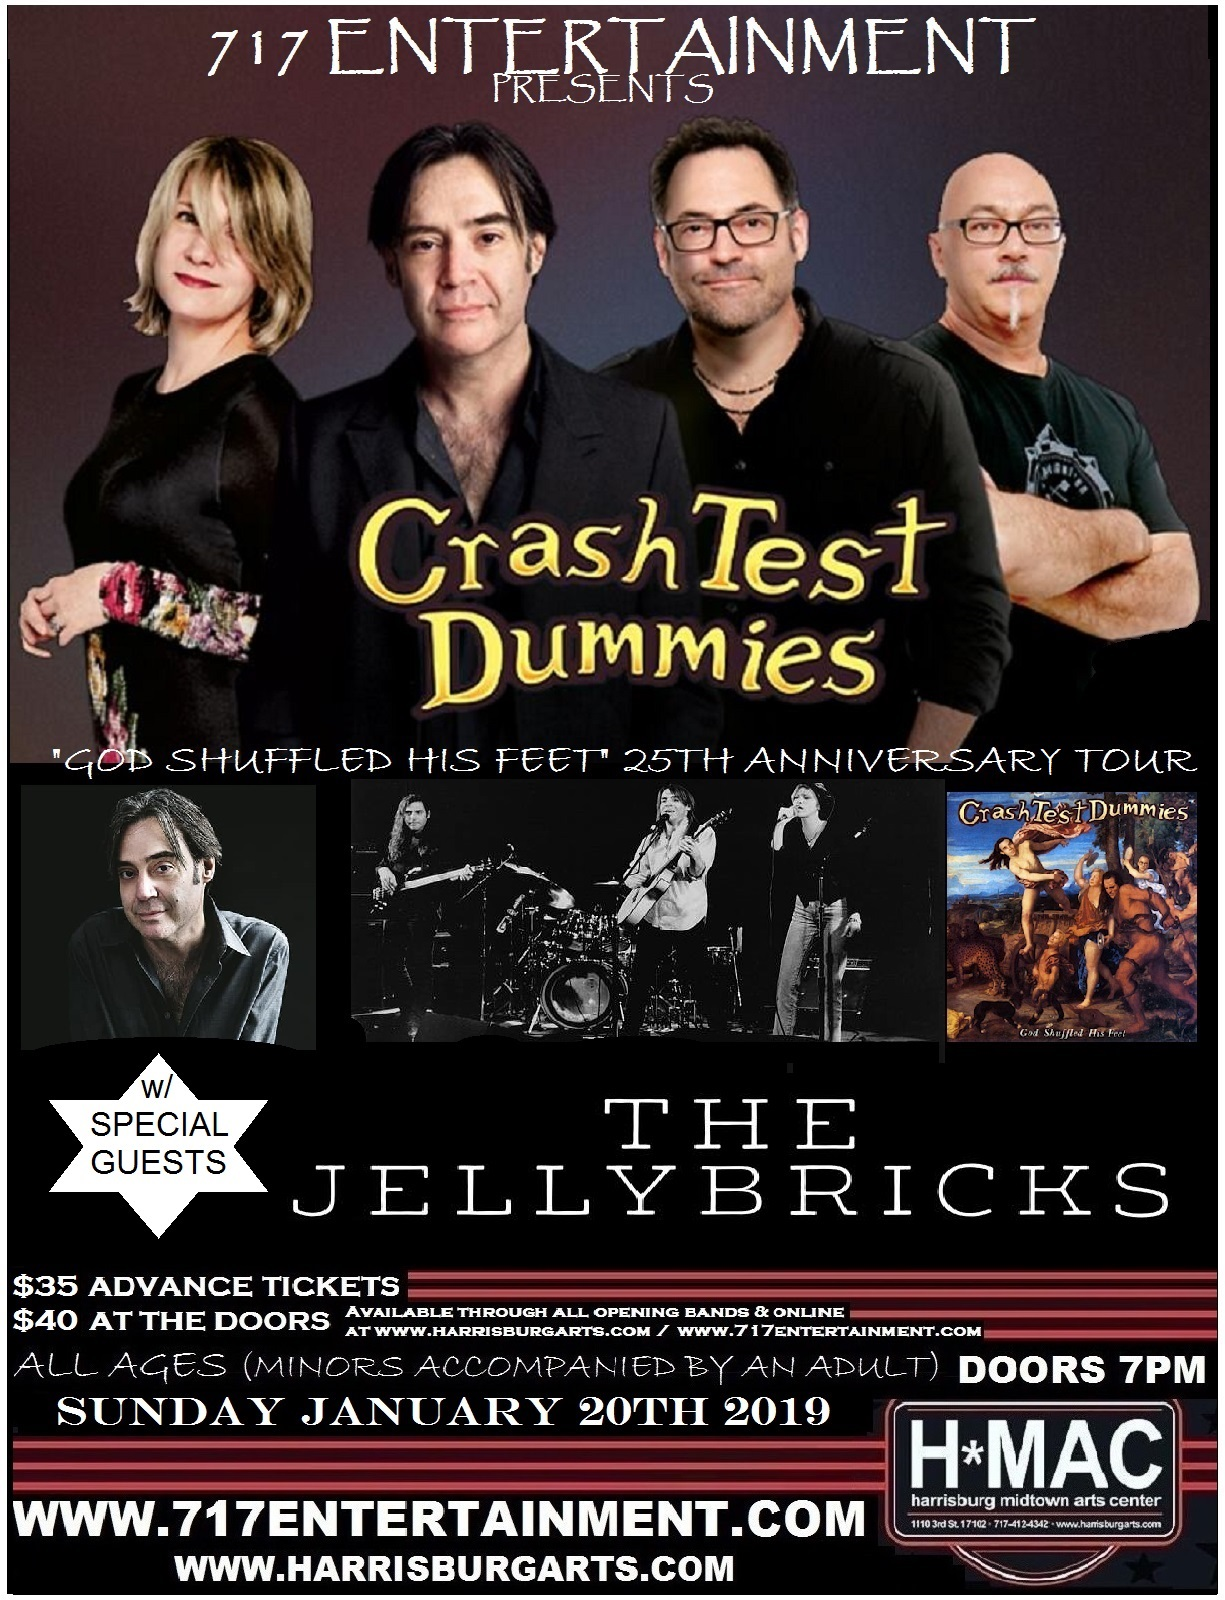 Crash Test Dummies Poster.jpg